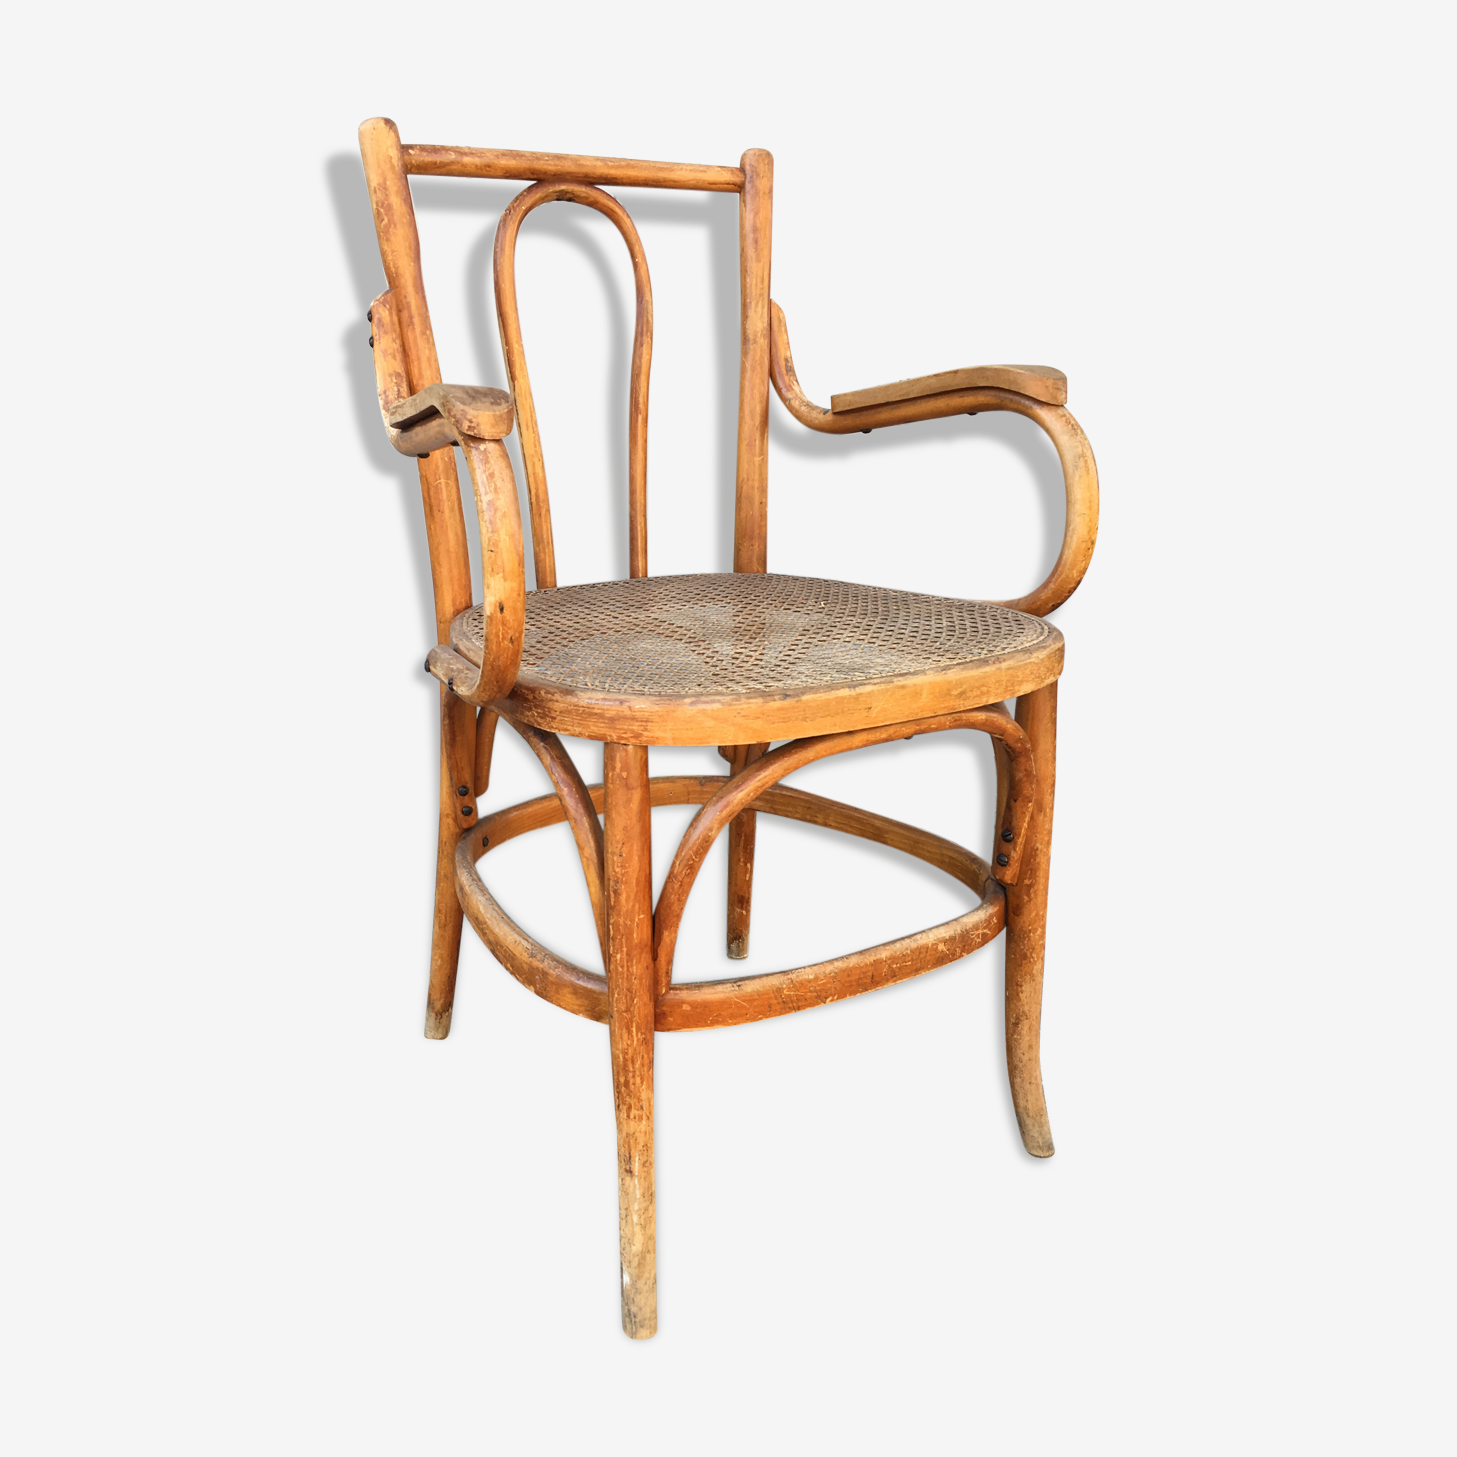 Fauteuil canage Thonet